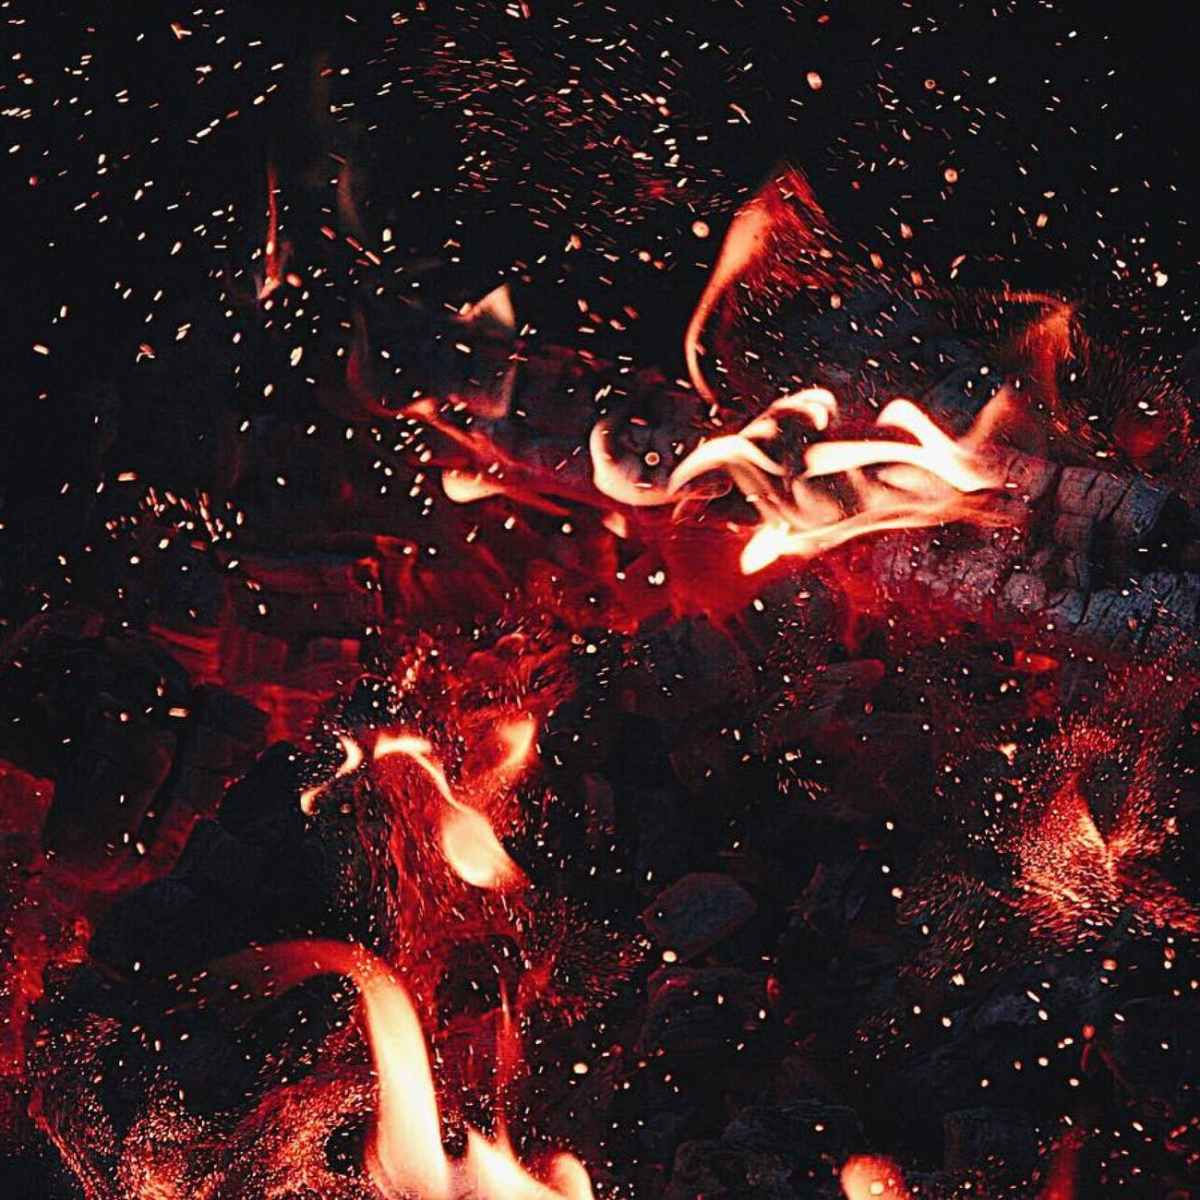 time lapse photography of flame